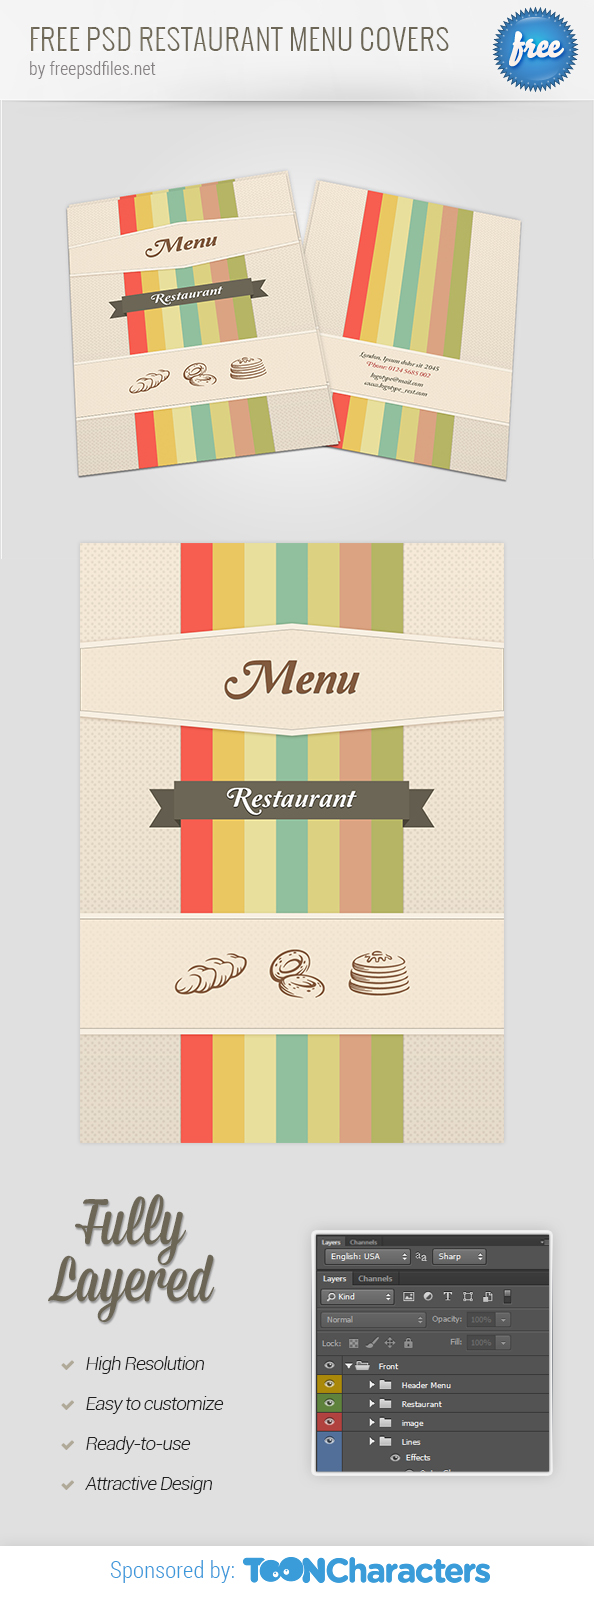 Free PSD Restaurant Menu Covers